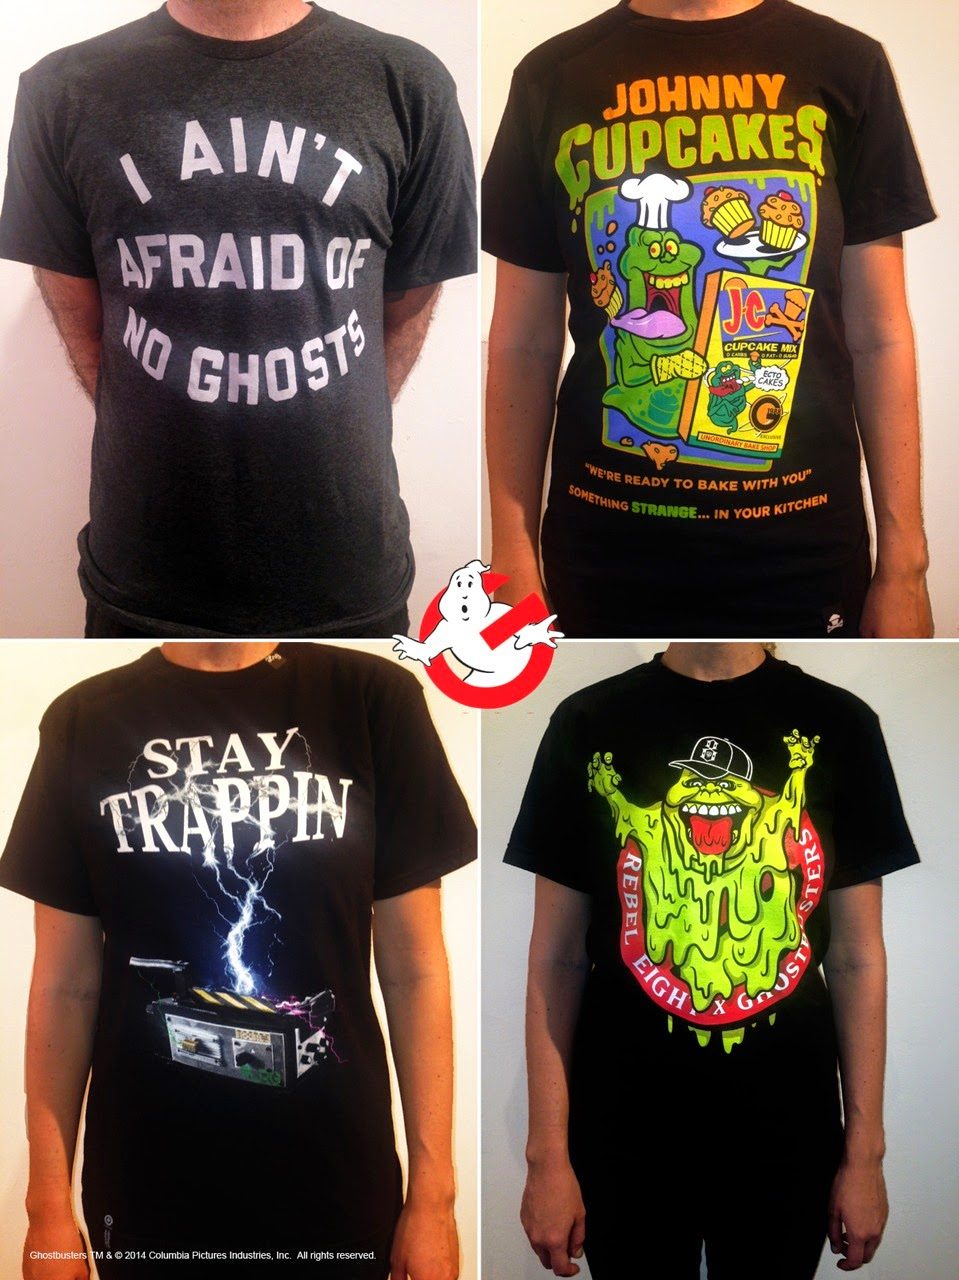 Gallery1988's Ghostbusters 30th Anniversary T-Shirt Collection by Homage, Johnny Cupcakes, LRG & Rebel8